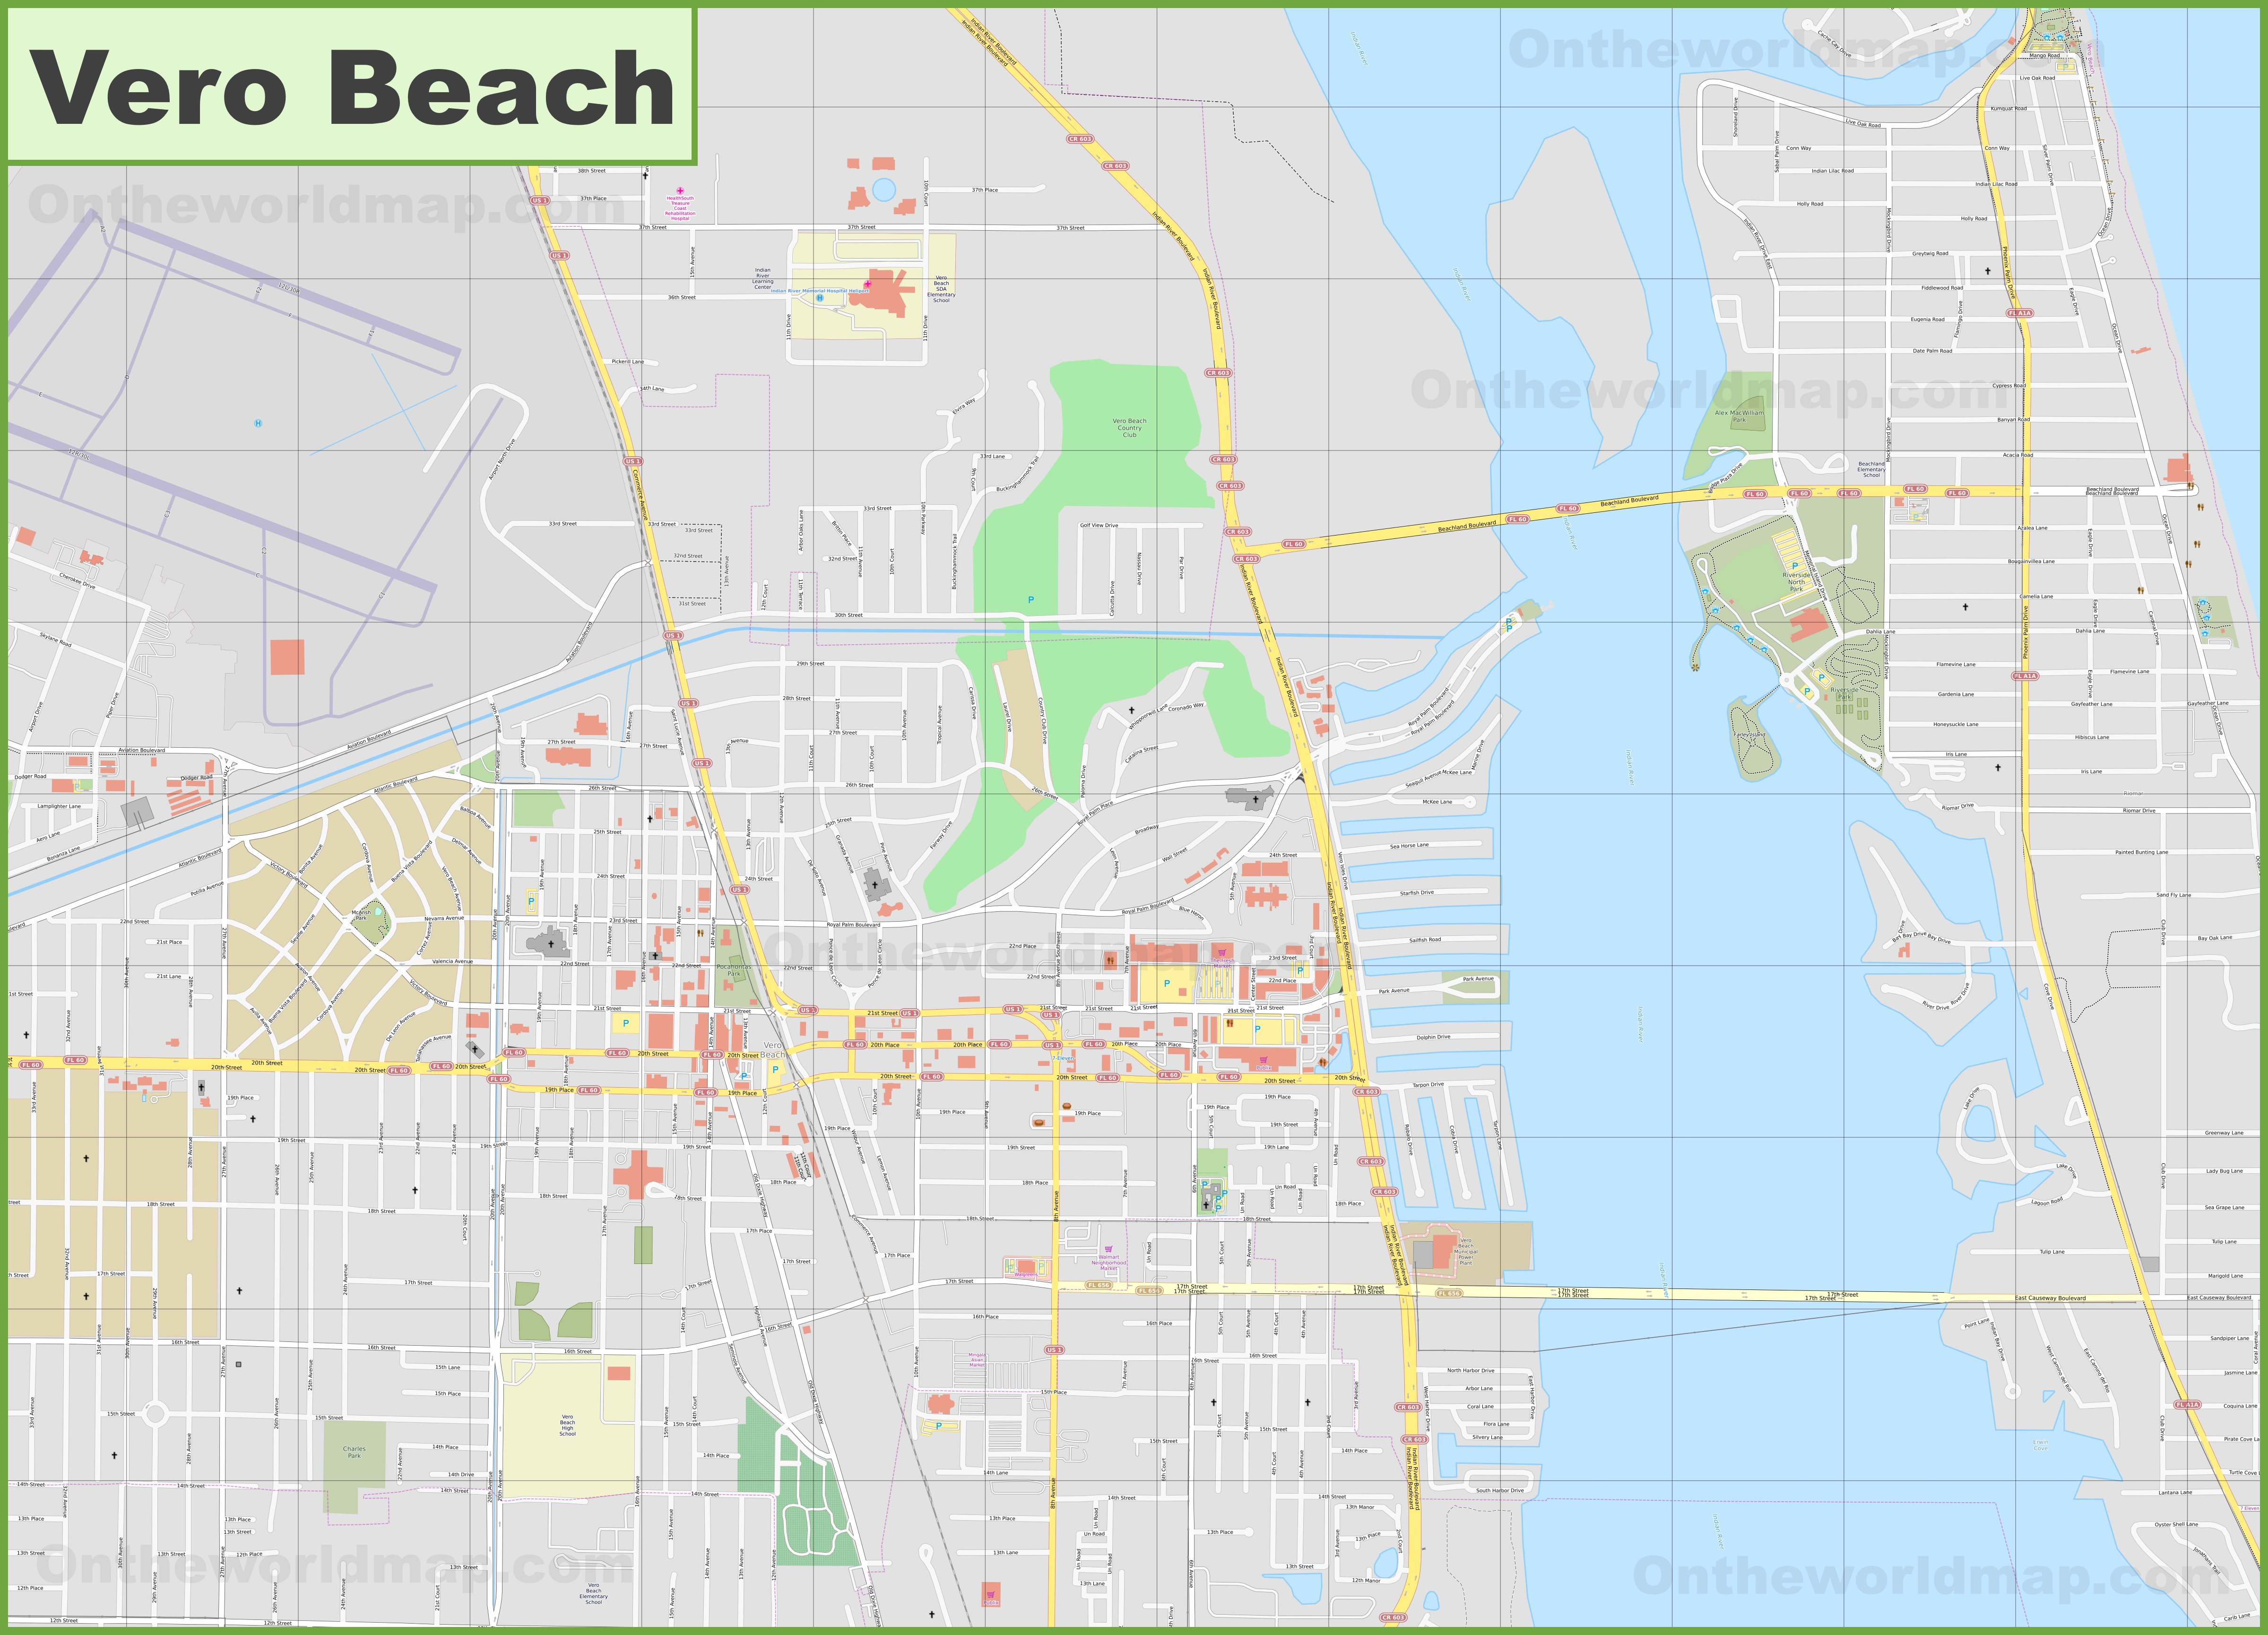 Map Of Florida Showing Vero Beach.Large Detailed Map Of Vero Beach